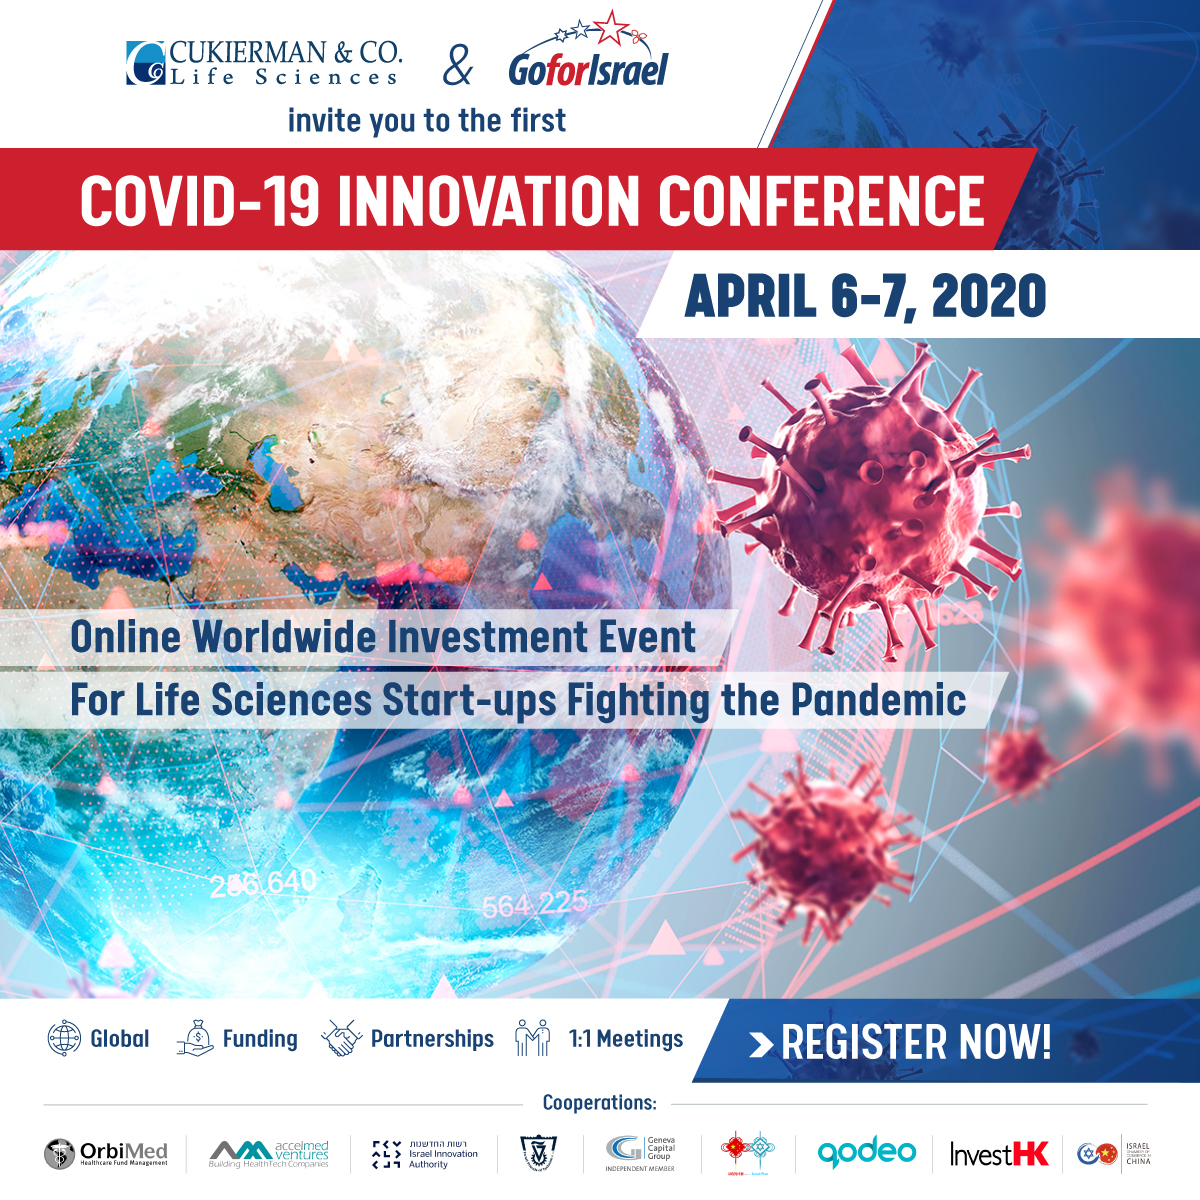 Covid-19 Innovation Conference - Worldwide Online Investment Event